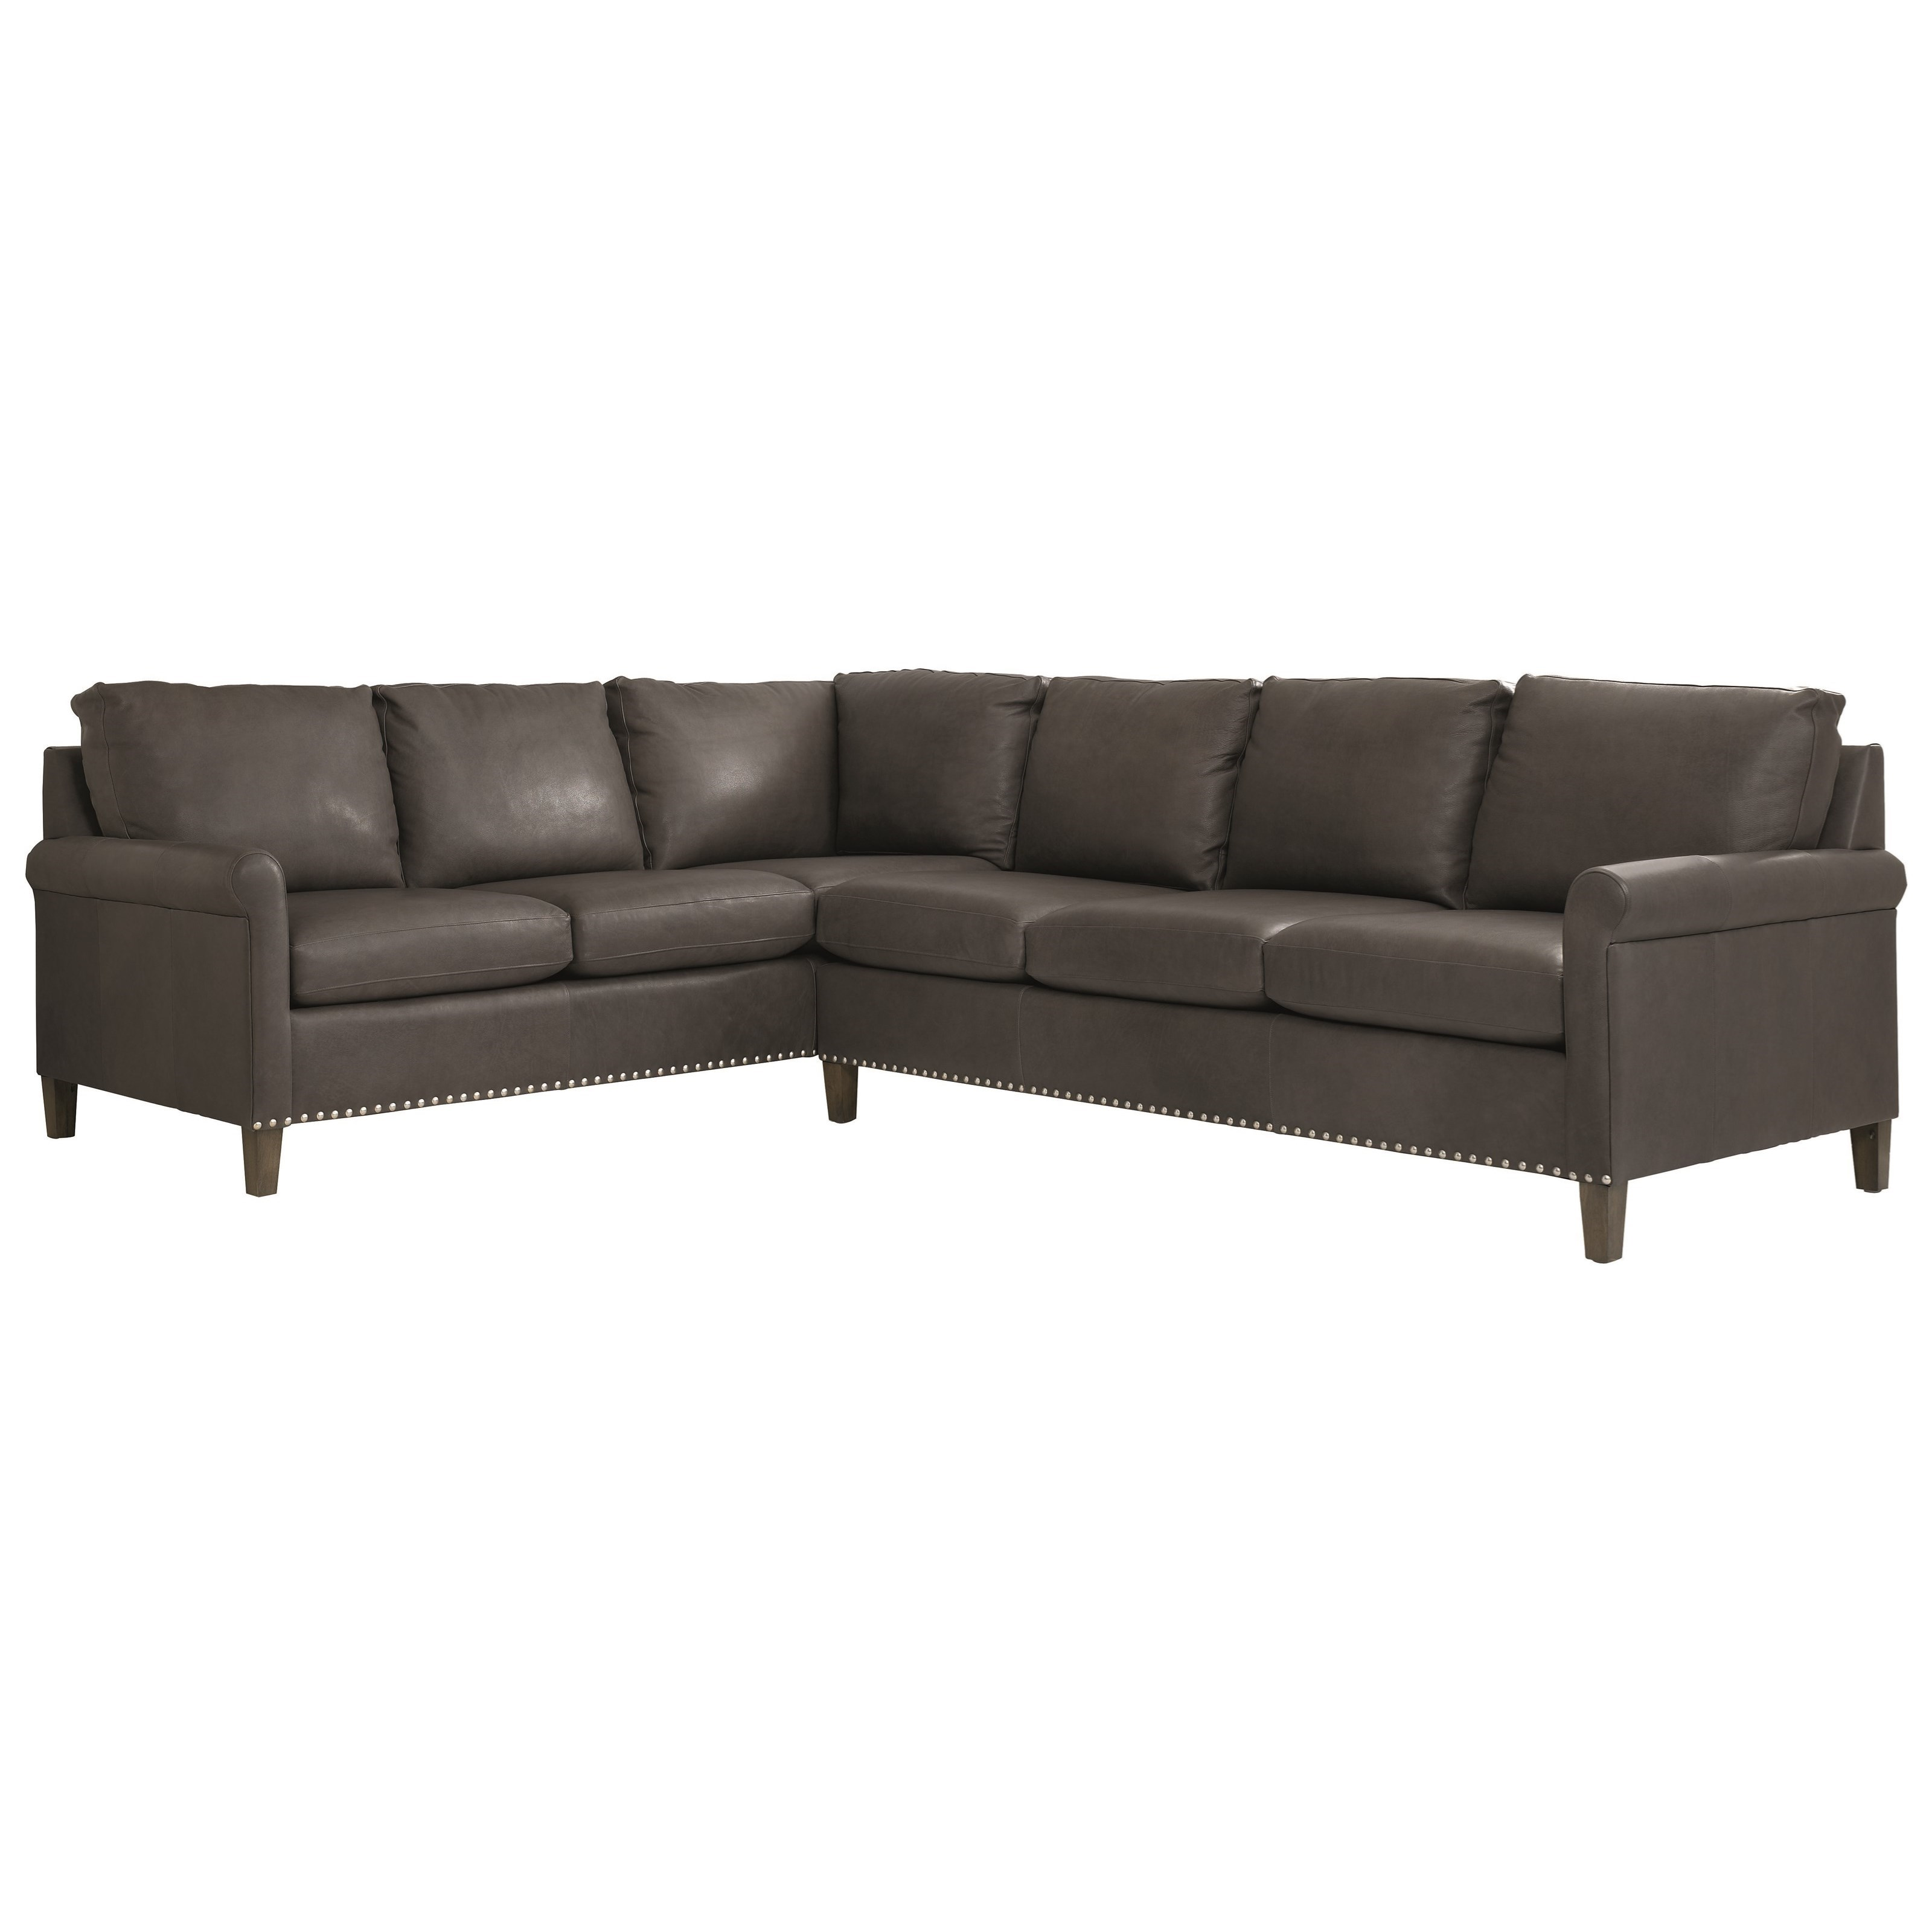 Wellington 2-Piece Sectional by Bassett at Bassett of Cool Springs